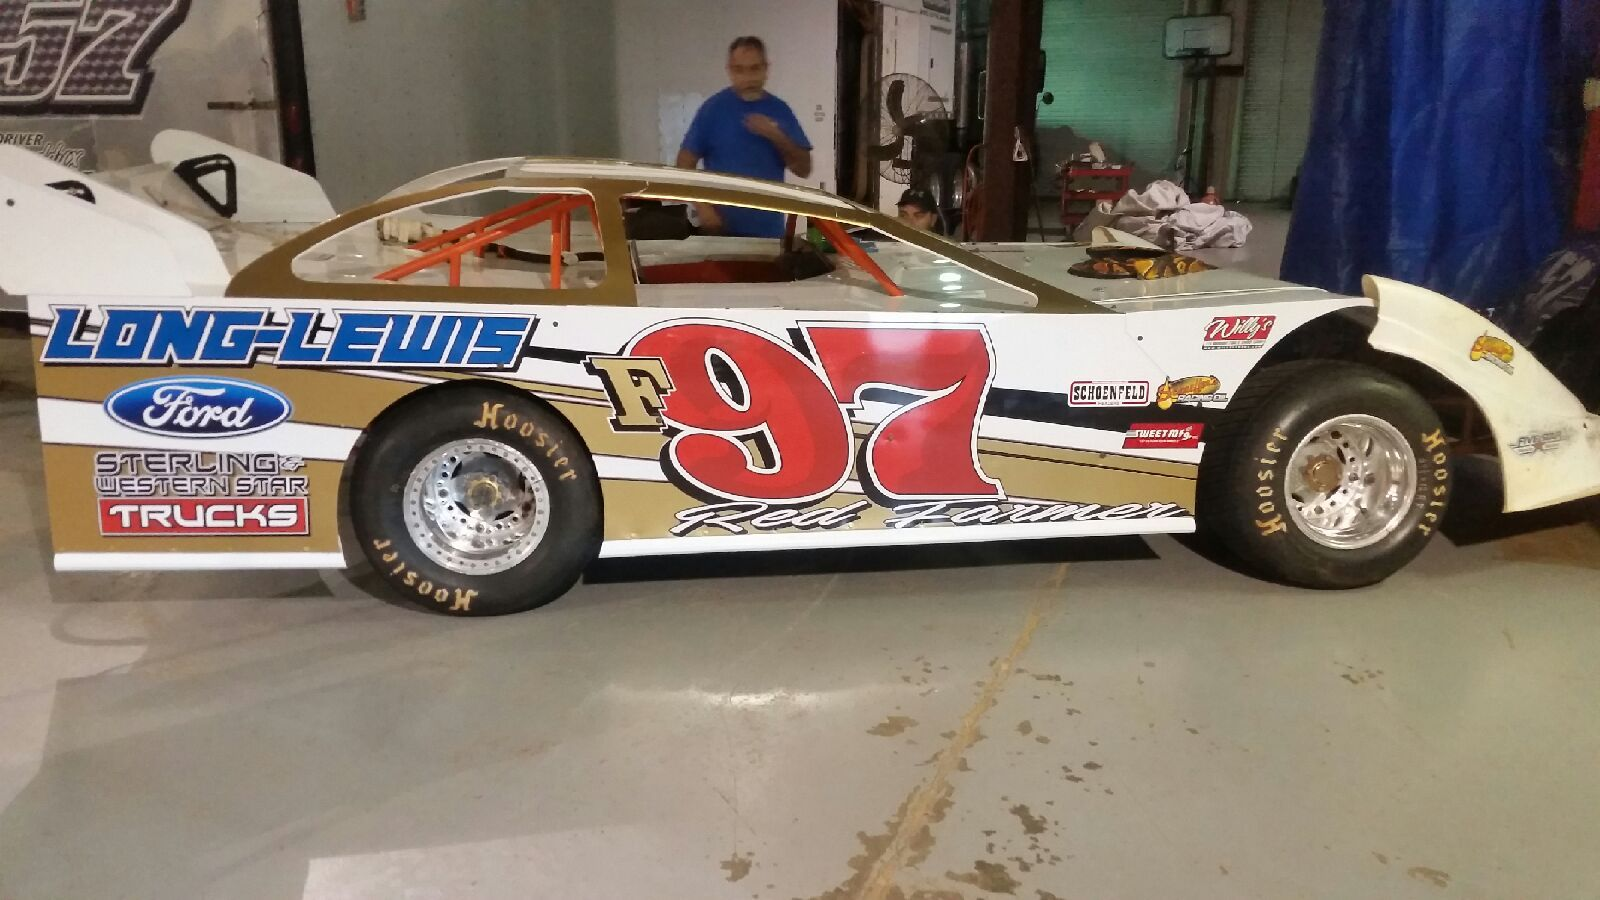 My Fathers Car Red Farmer With Images Dirt Late Models Late Model Racing Old Race Cars